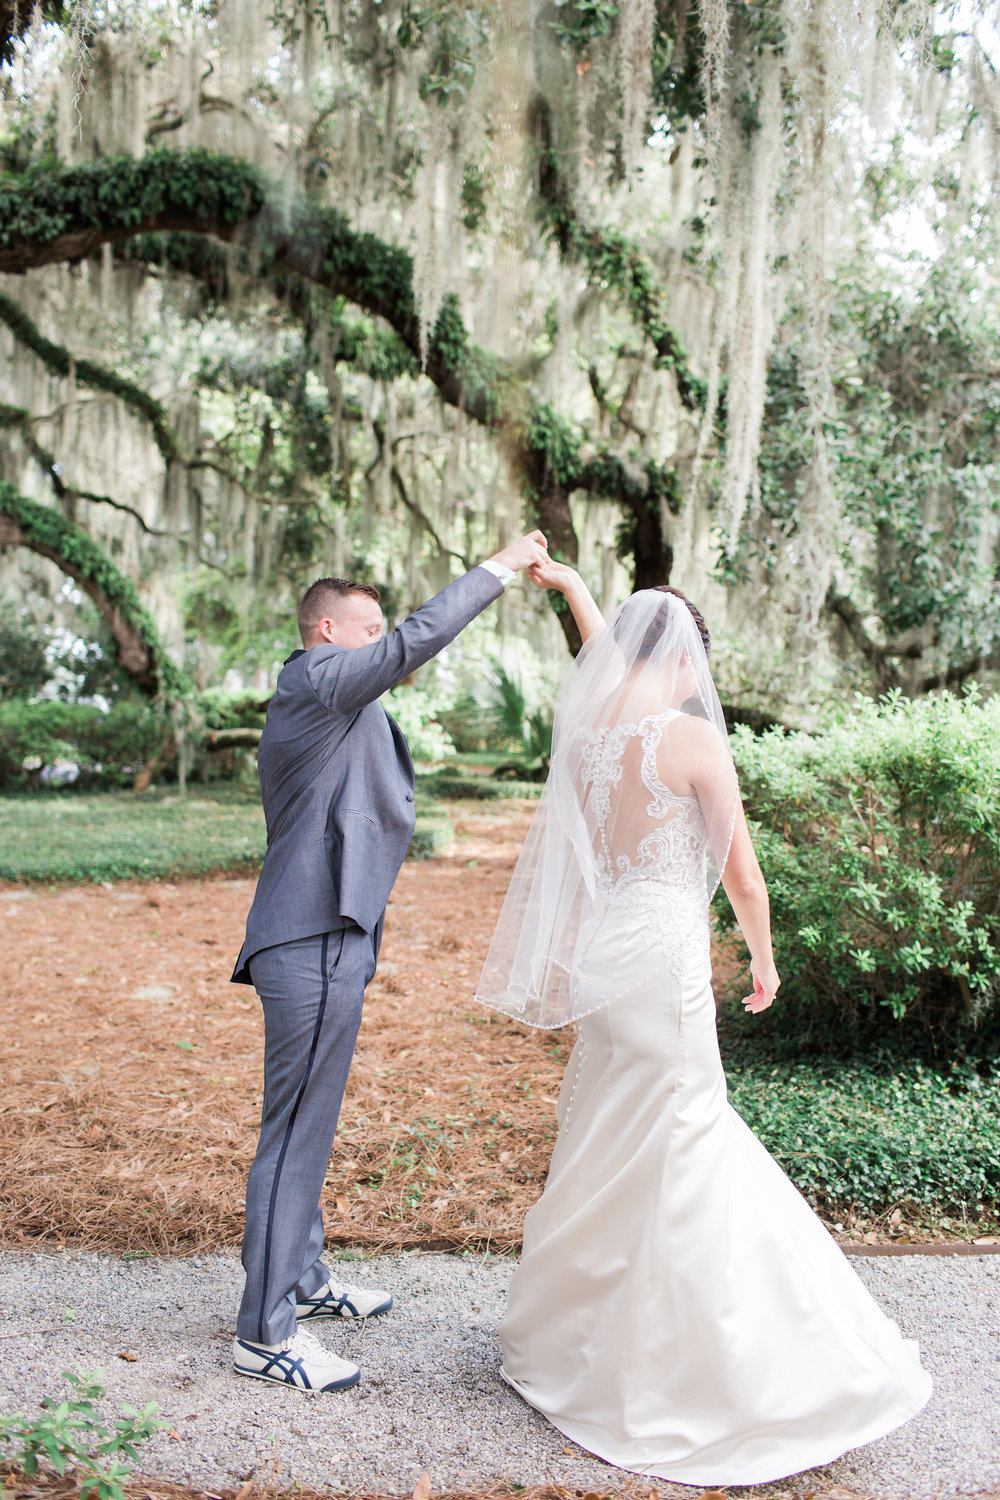 apt-b-photography-lauren-graham-oldfield-wedding-south-carolina-wedding-photographer-savannah-wedding-lowcountry-wedding-coastal-wedding-first-look-11.JPG